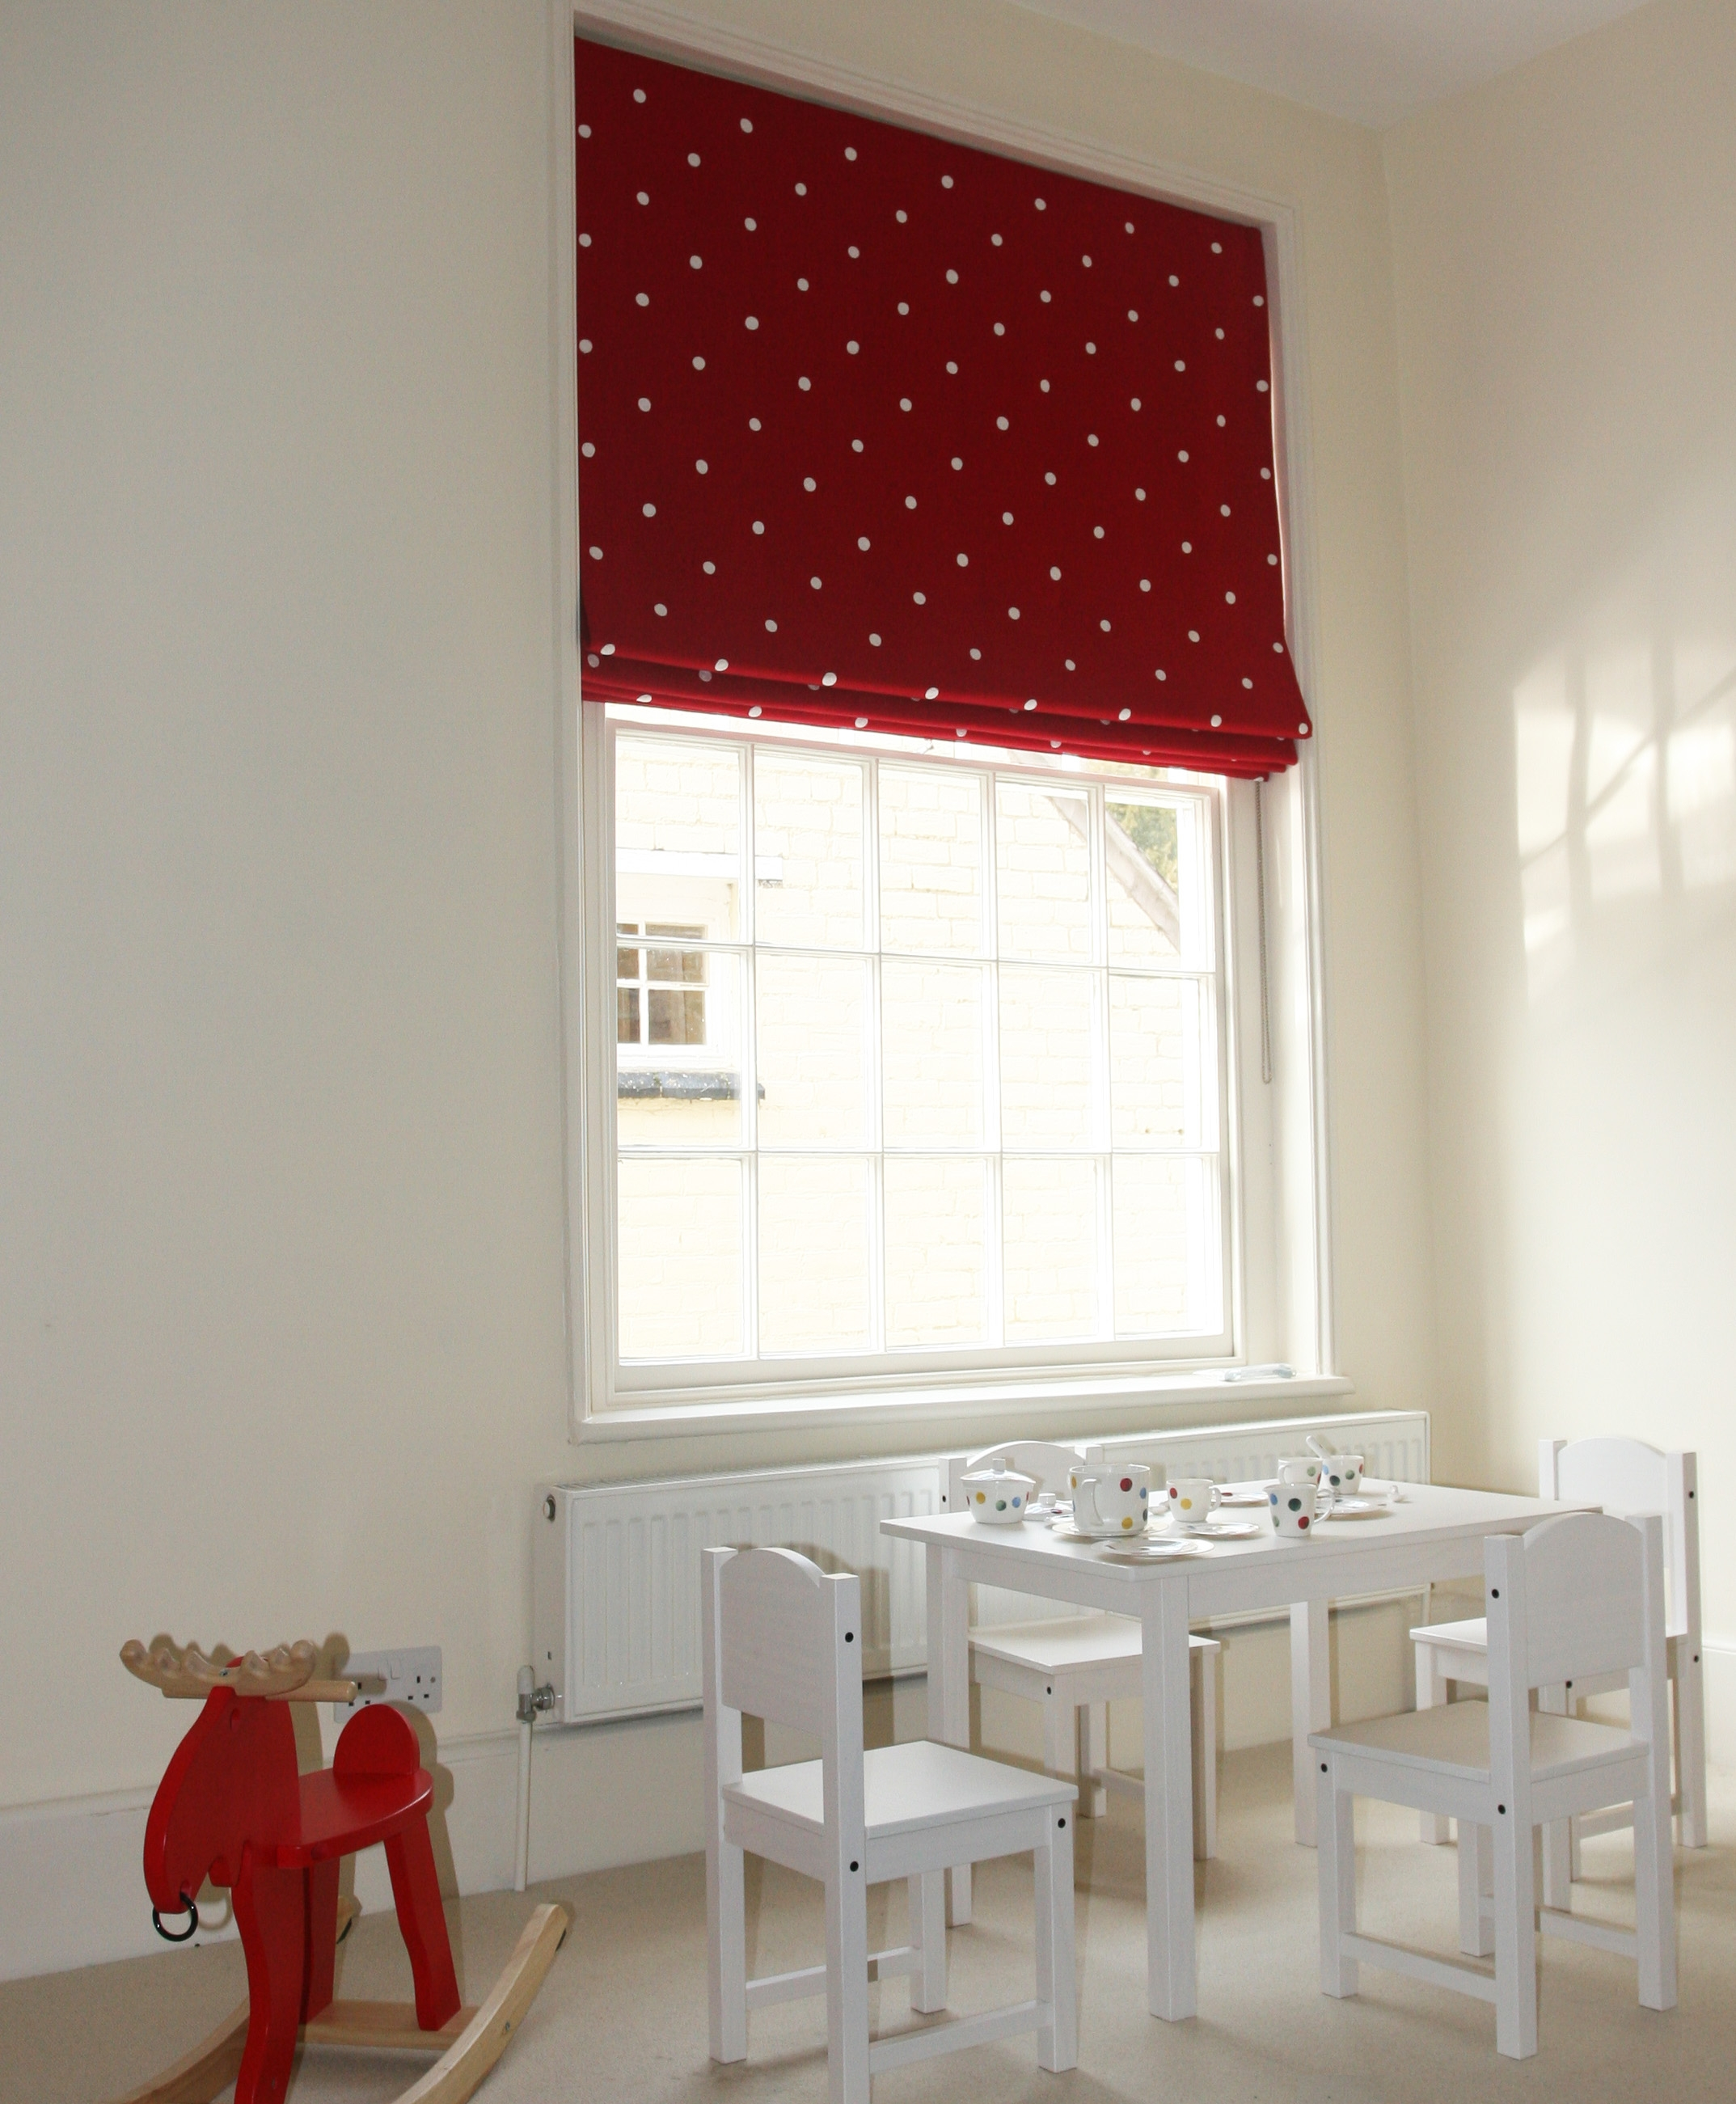 Childrens Bedroom Blackout Lined Roman Blind In Moghuls Throughout Roman Blinds With Blackout Lining (View 4 of 15)